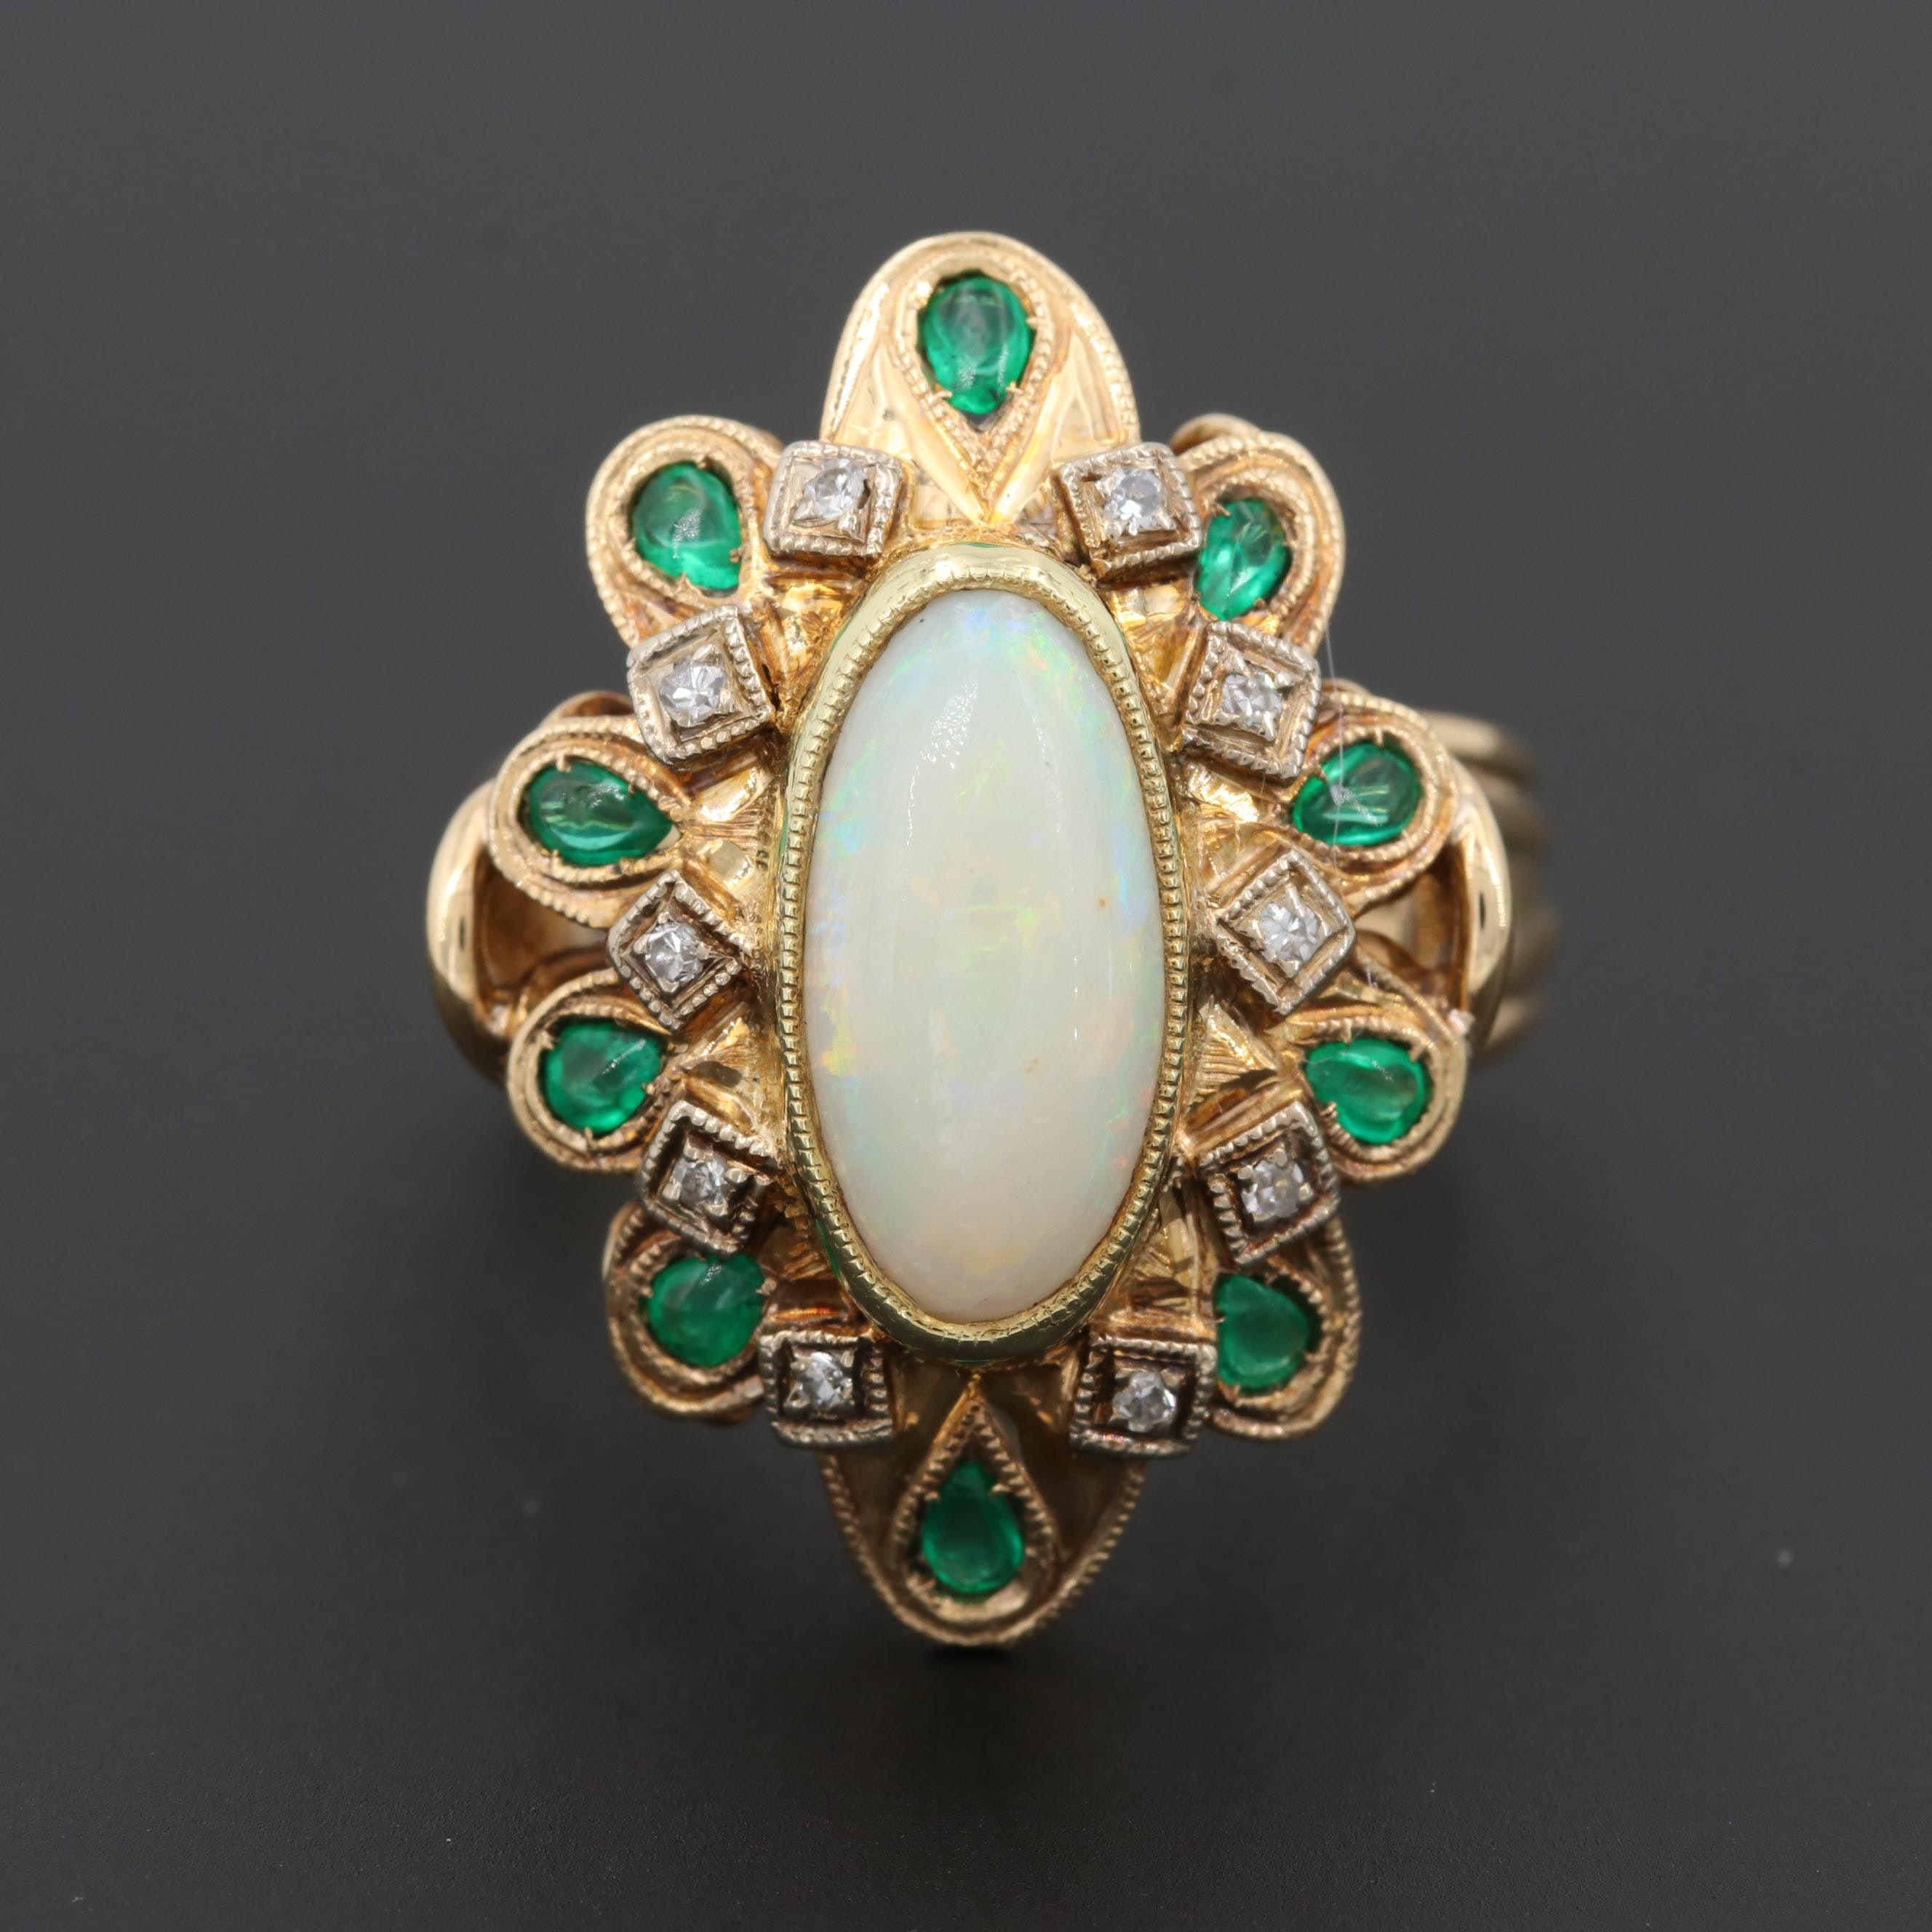 Vintage 14K Yellow Gold Opal, Emerald and Diamond Ring